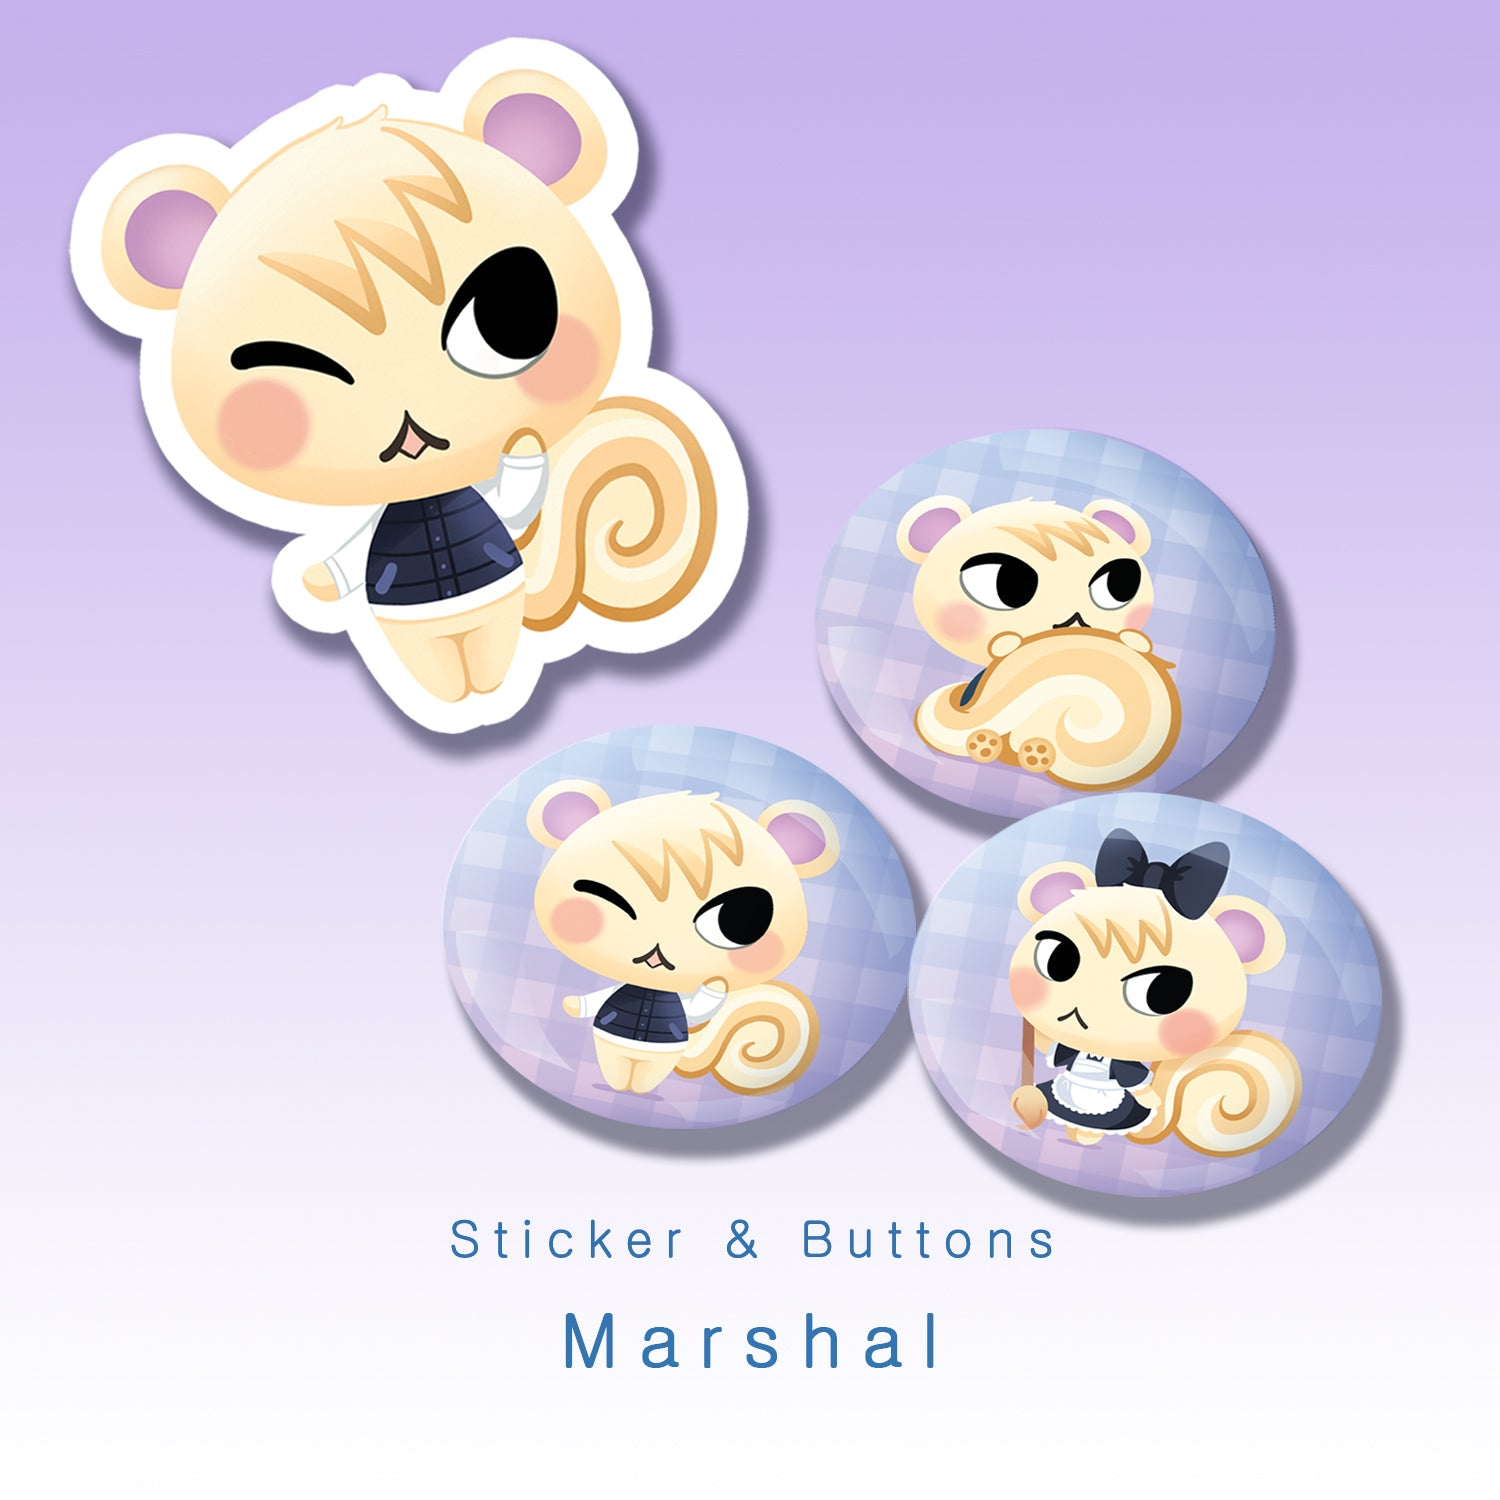 [Animal Crossing] Marshal - Buttons and sticker